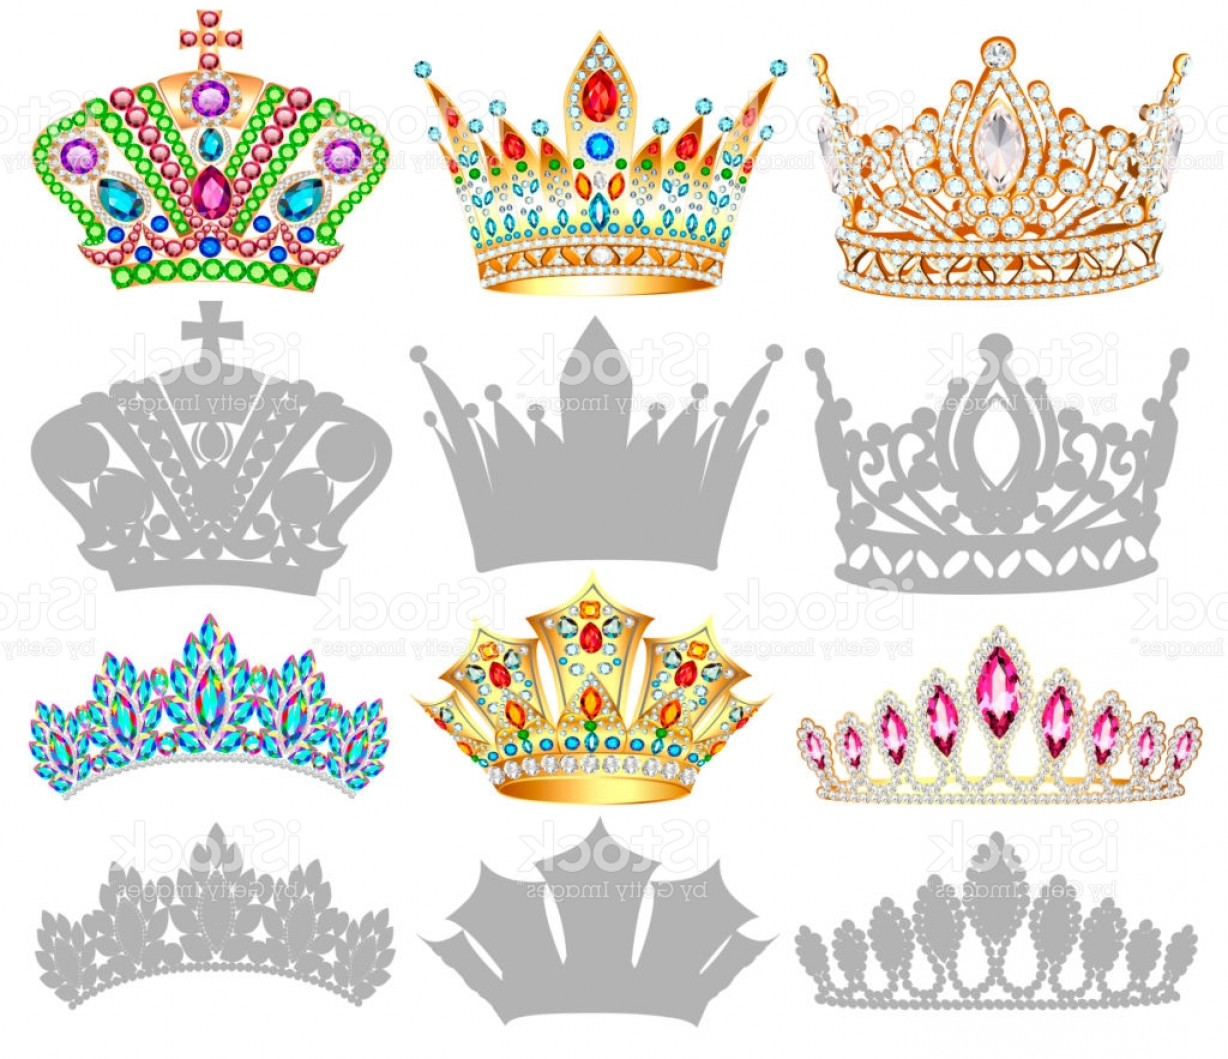 Baby Tiara Silhouette Vector: Set Of Golden Crown Illustrations Tiara Diadem And Silhouettes On White Background Gm